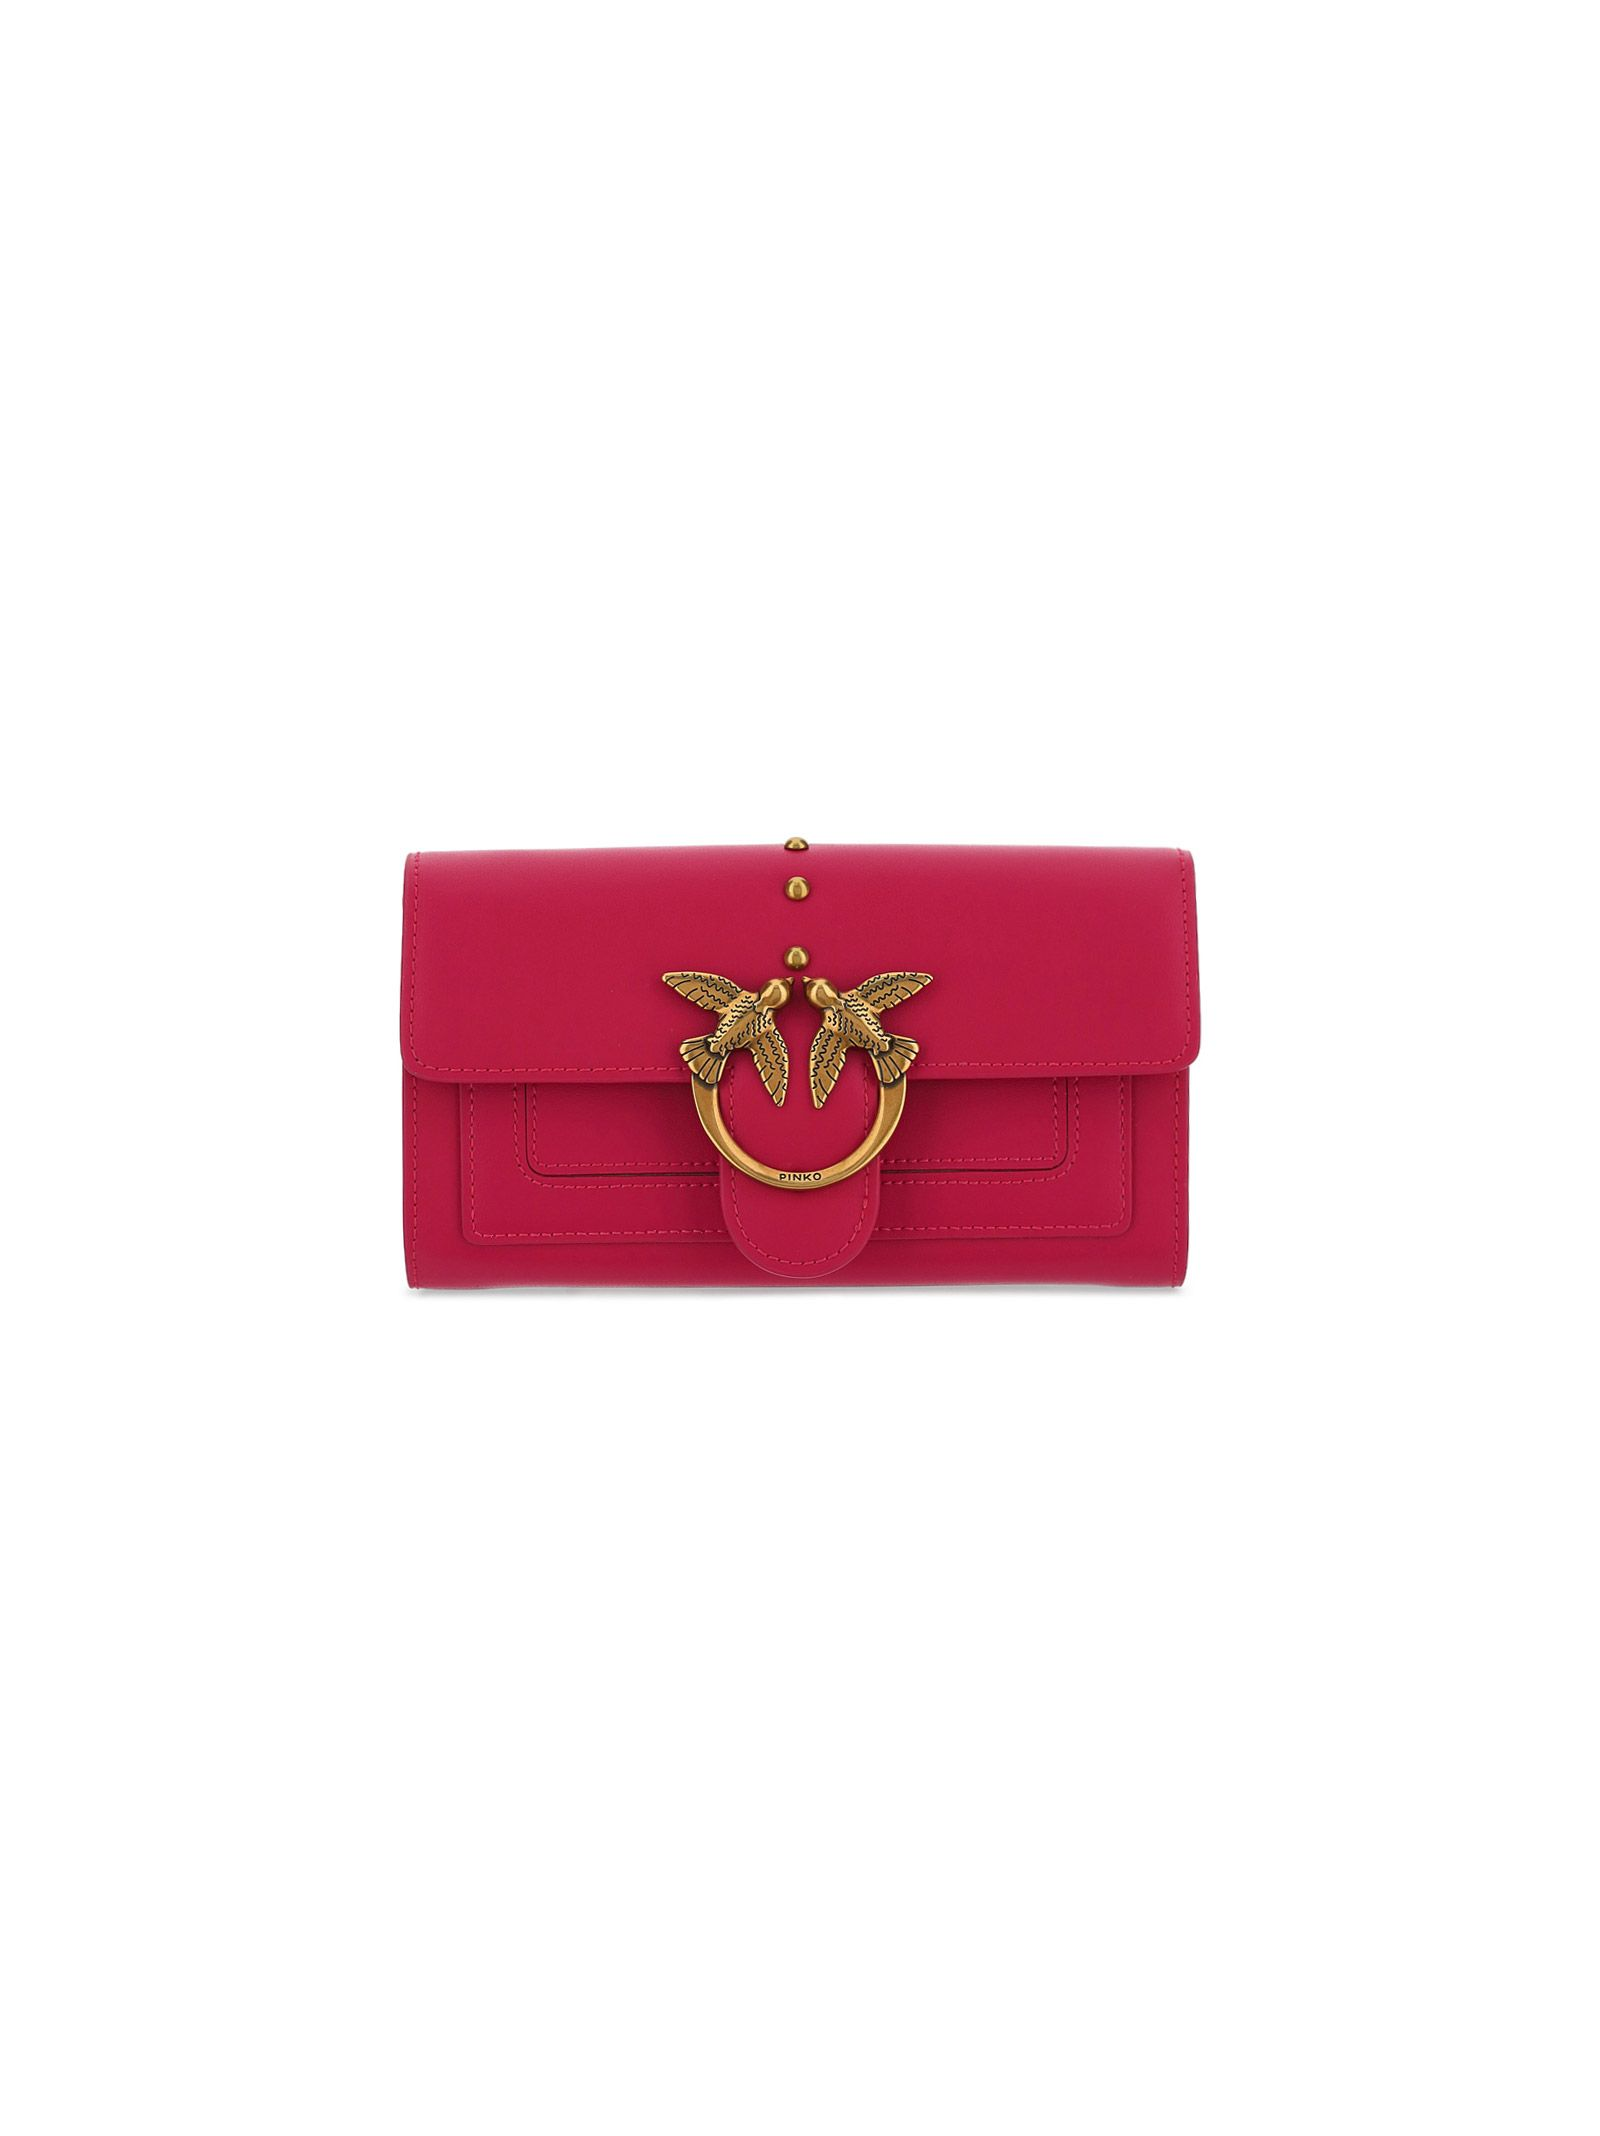 Pinko PINKO WOMEN'S PINK LEATHER WALLET